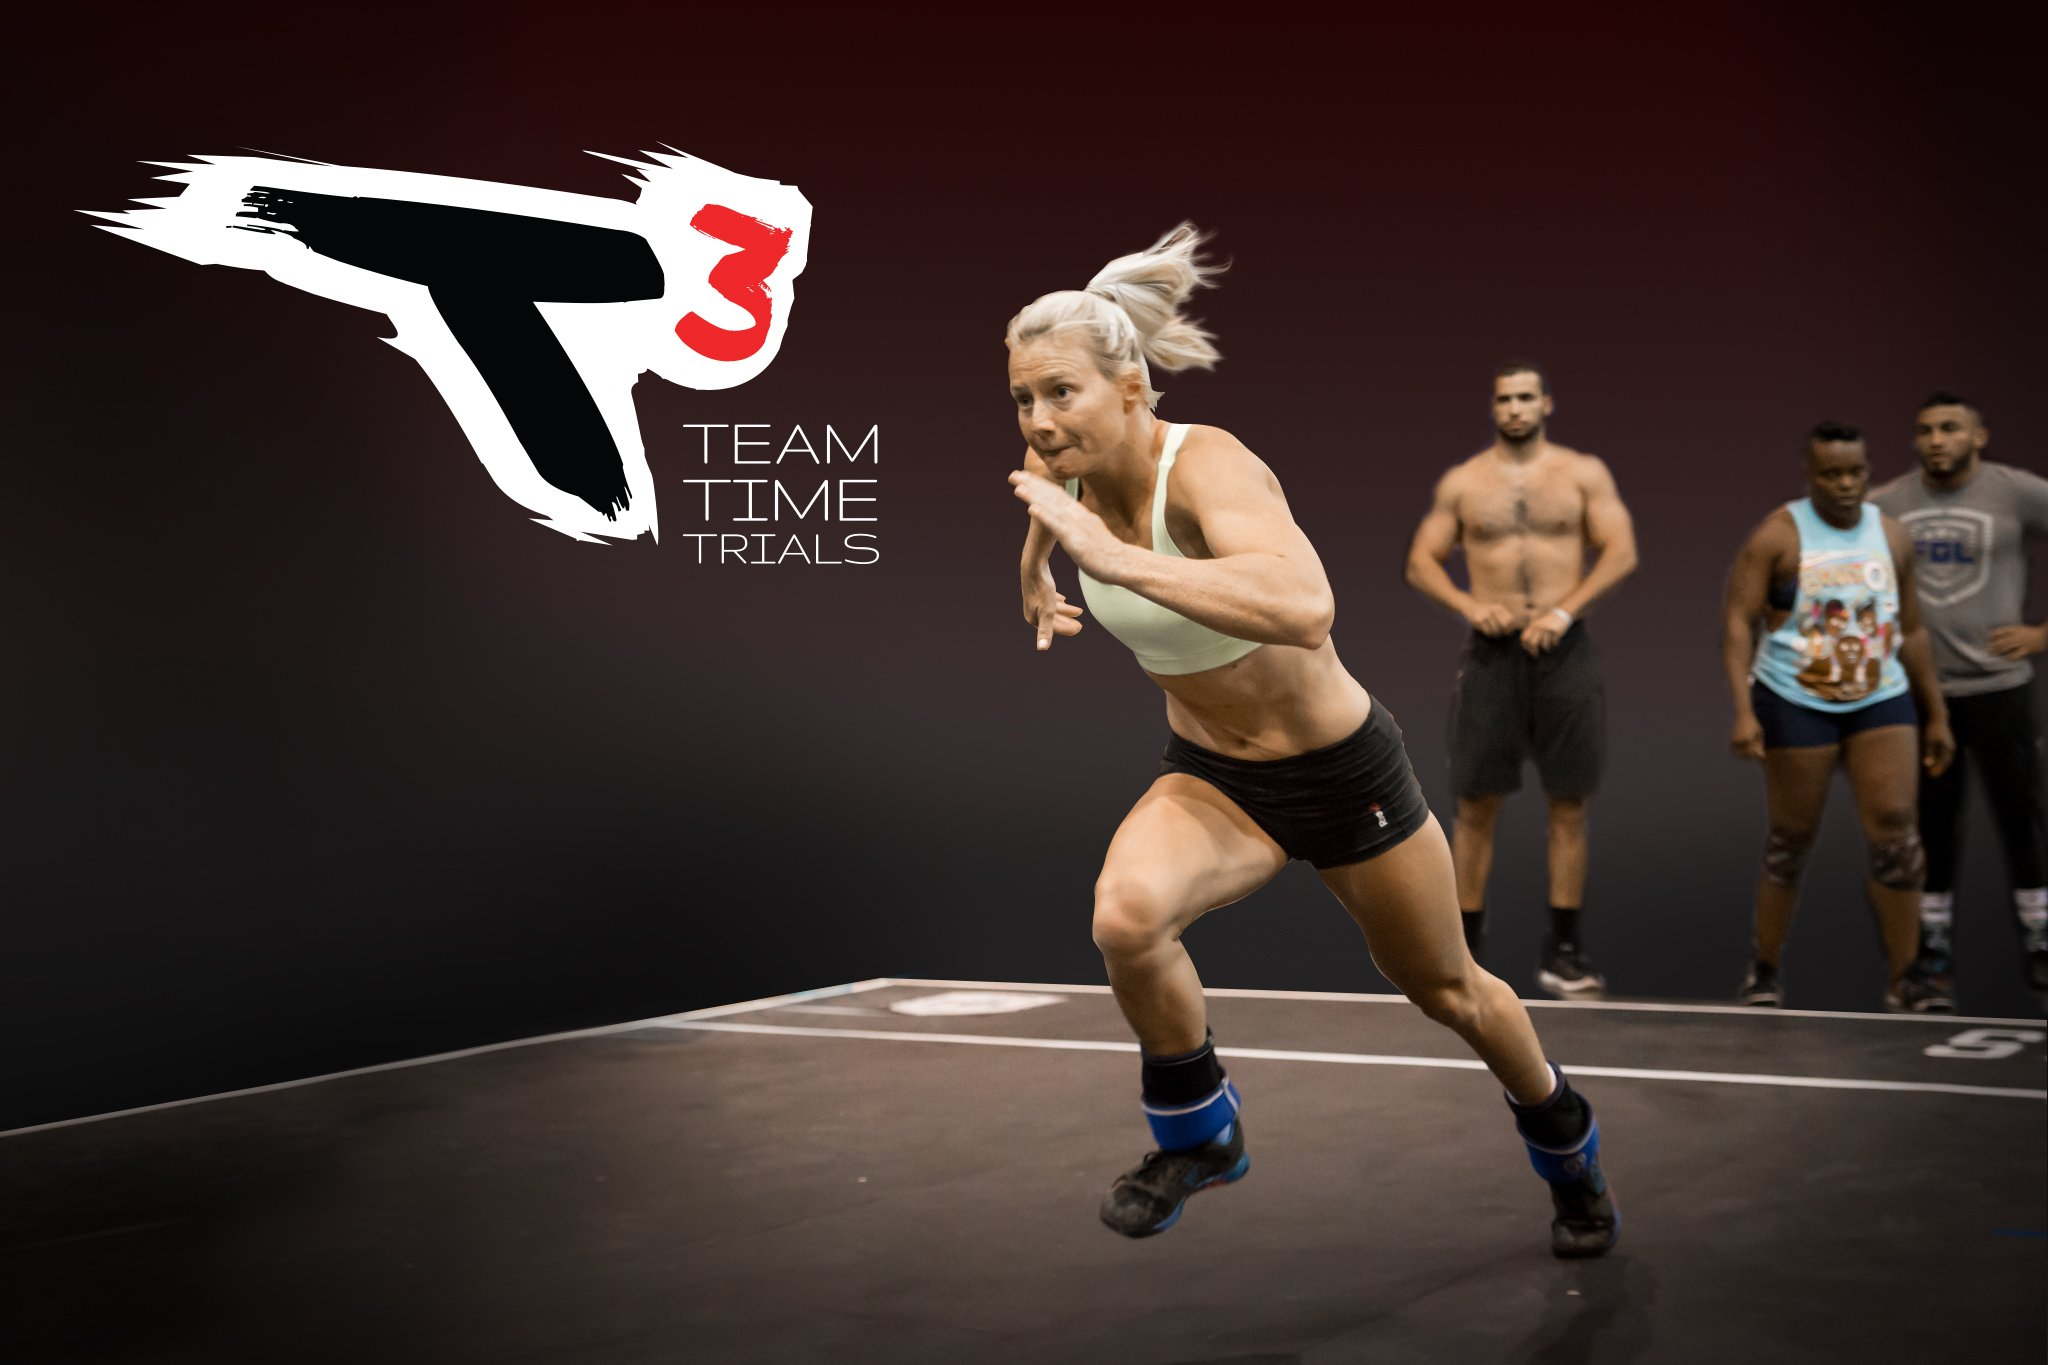 Why are we putting on T3 with Freakin CrossFit?